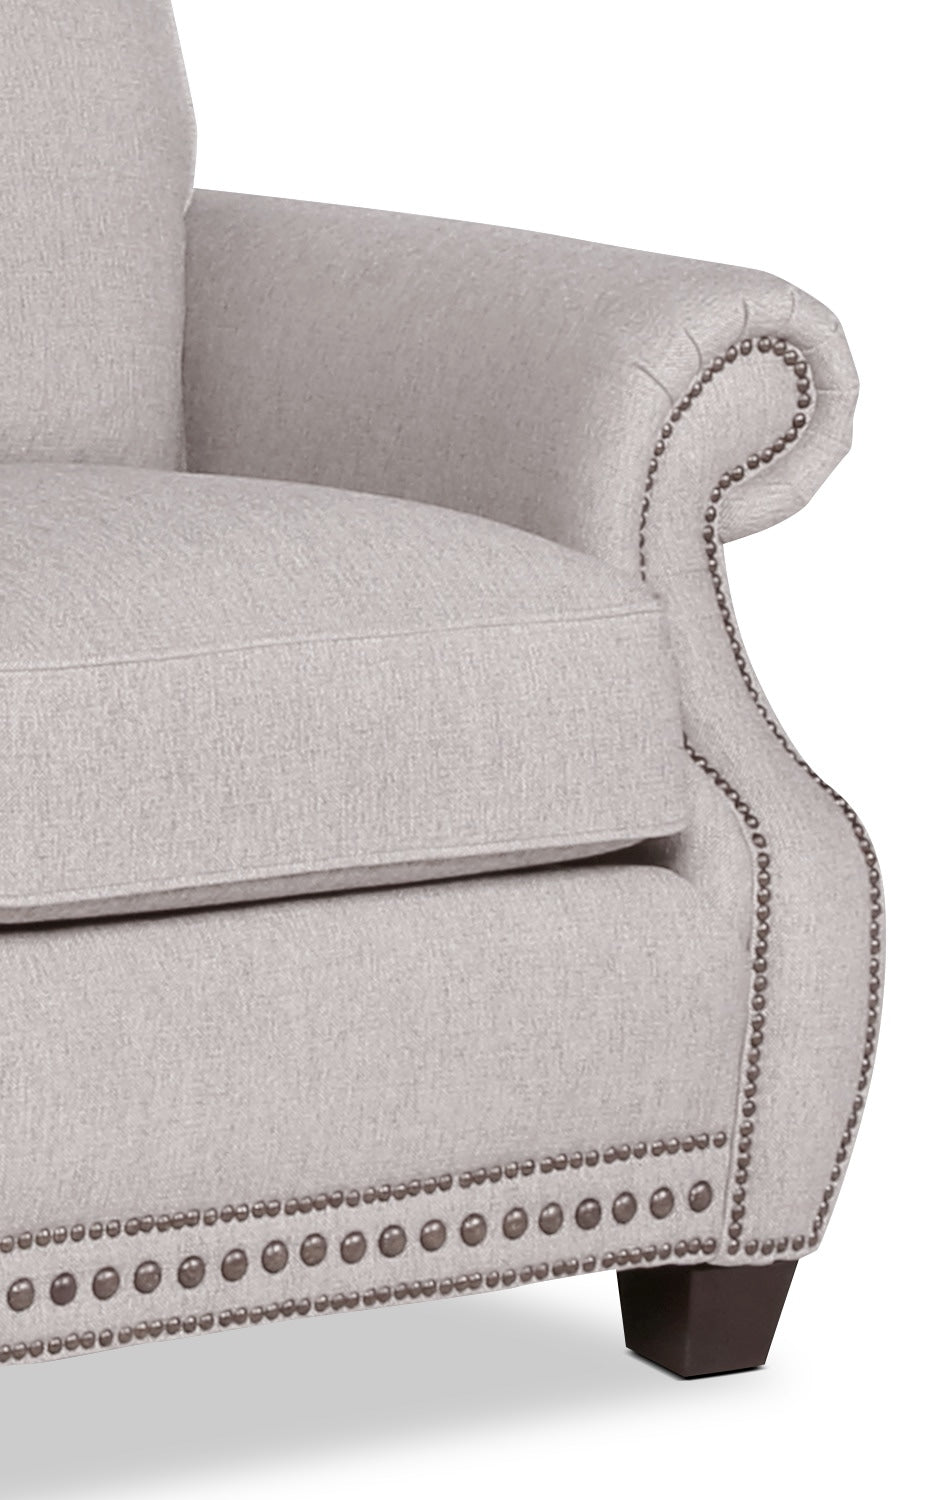 Haden Linen-Look Fabric Sofa – Grey | The Brick on chaise furniture, chaise sofa sleeper, chaise recliner chair,